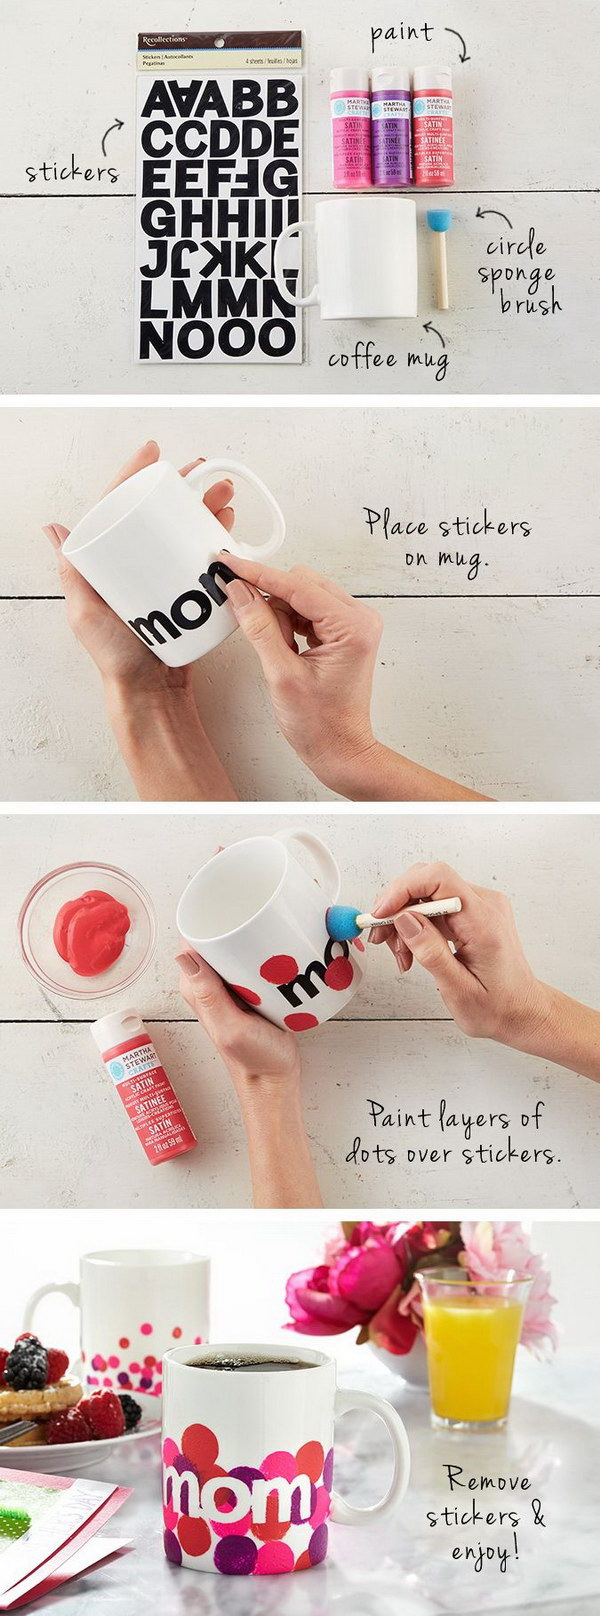 20 heartfelt diy gifts for mom 2017 Good ideas for christmas gifts for your mom